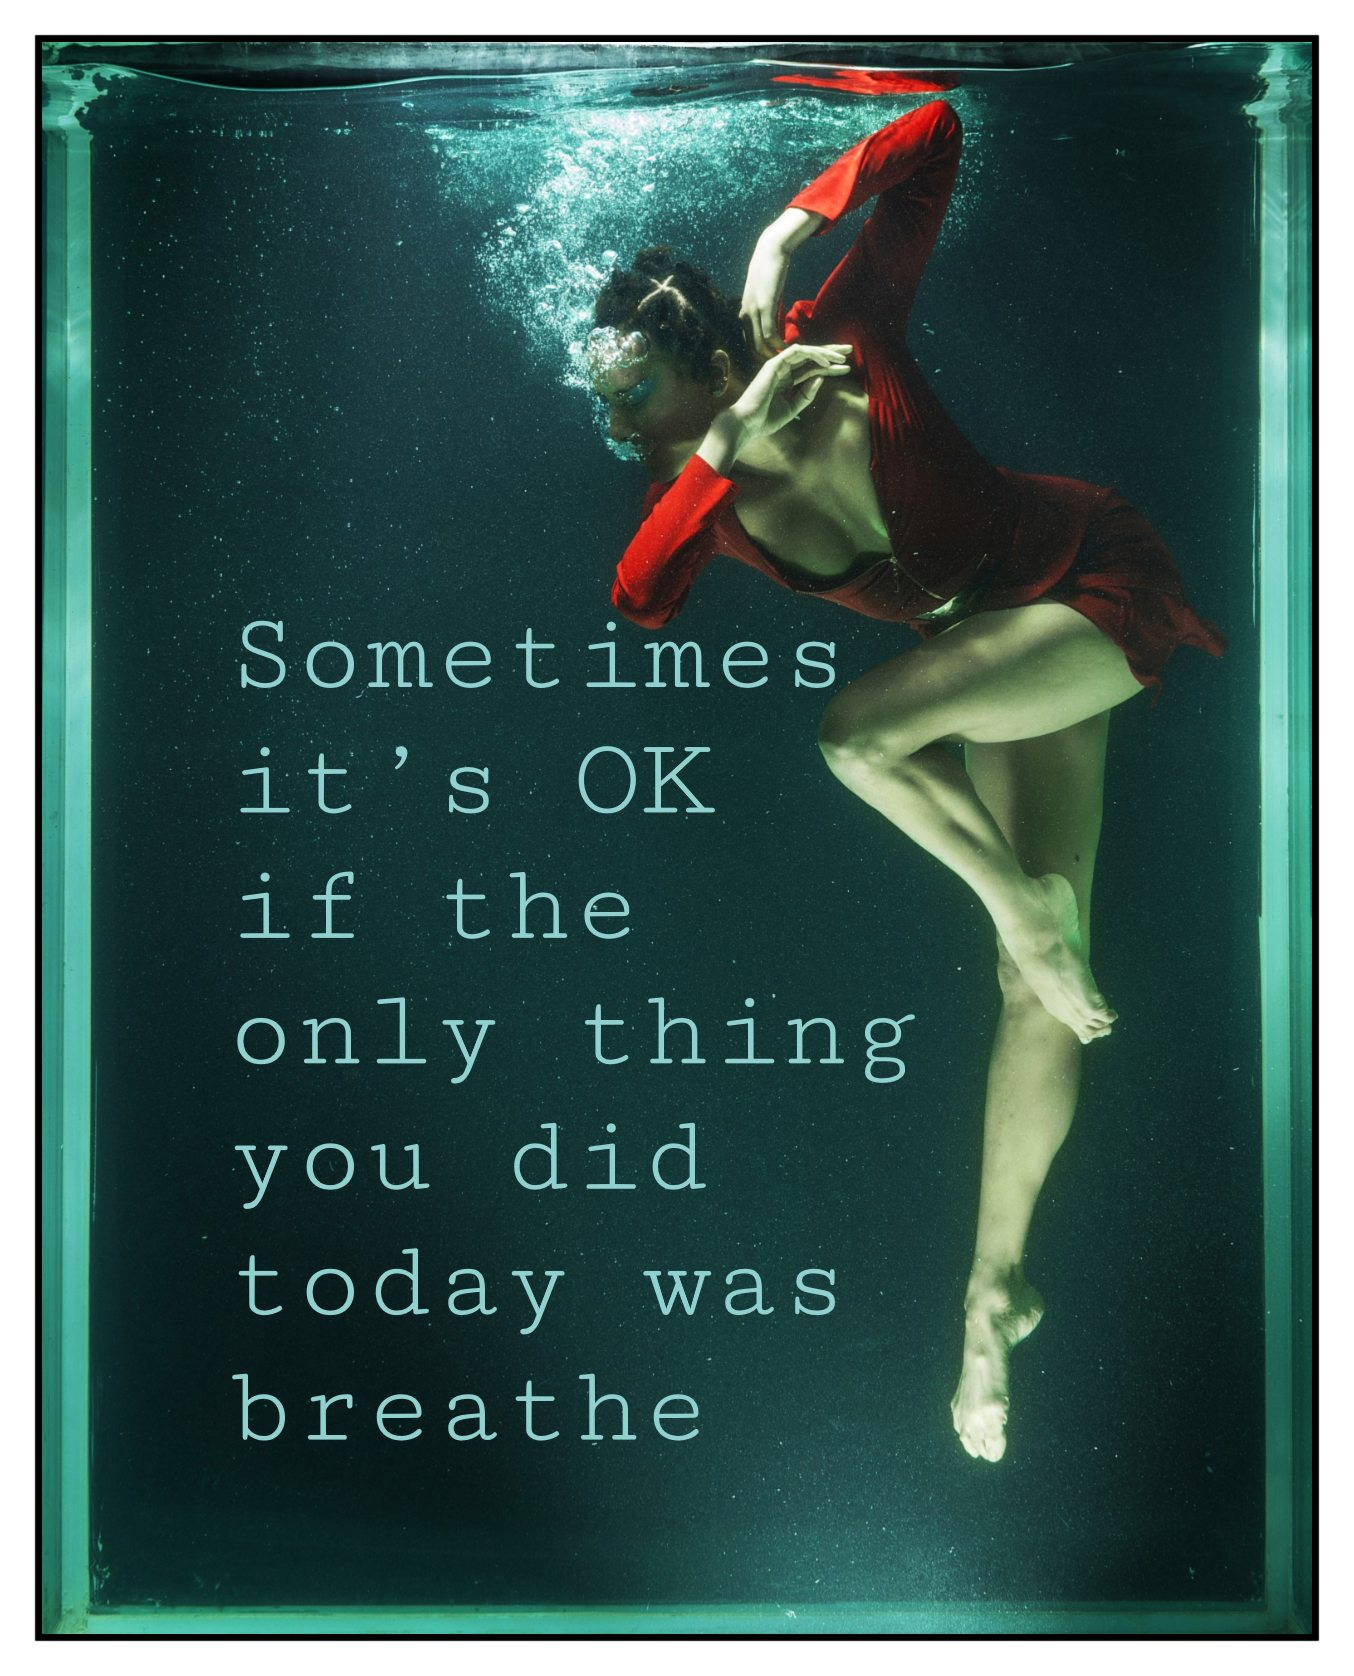 Sometimes it's OK if the only thing you did today was breathe Yumi Sakugawa Quote bekitschig.blog